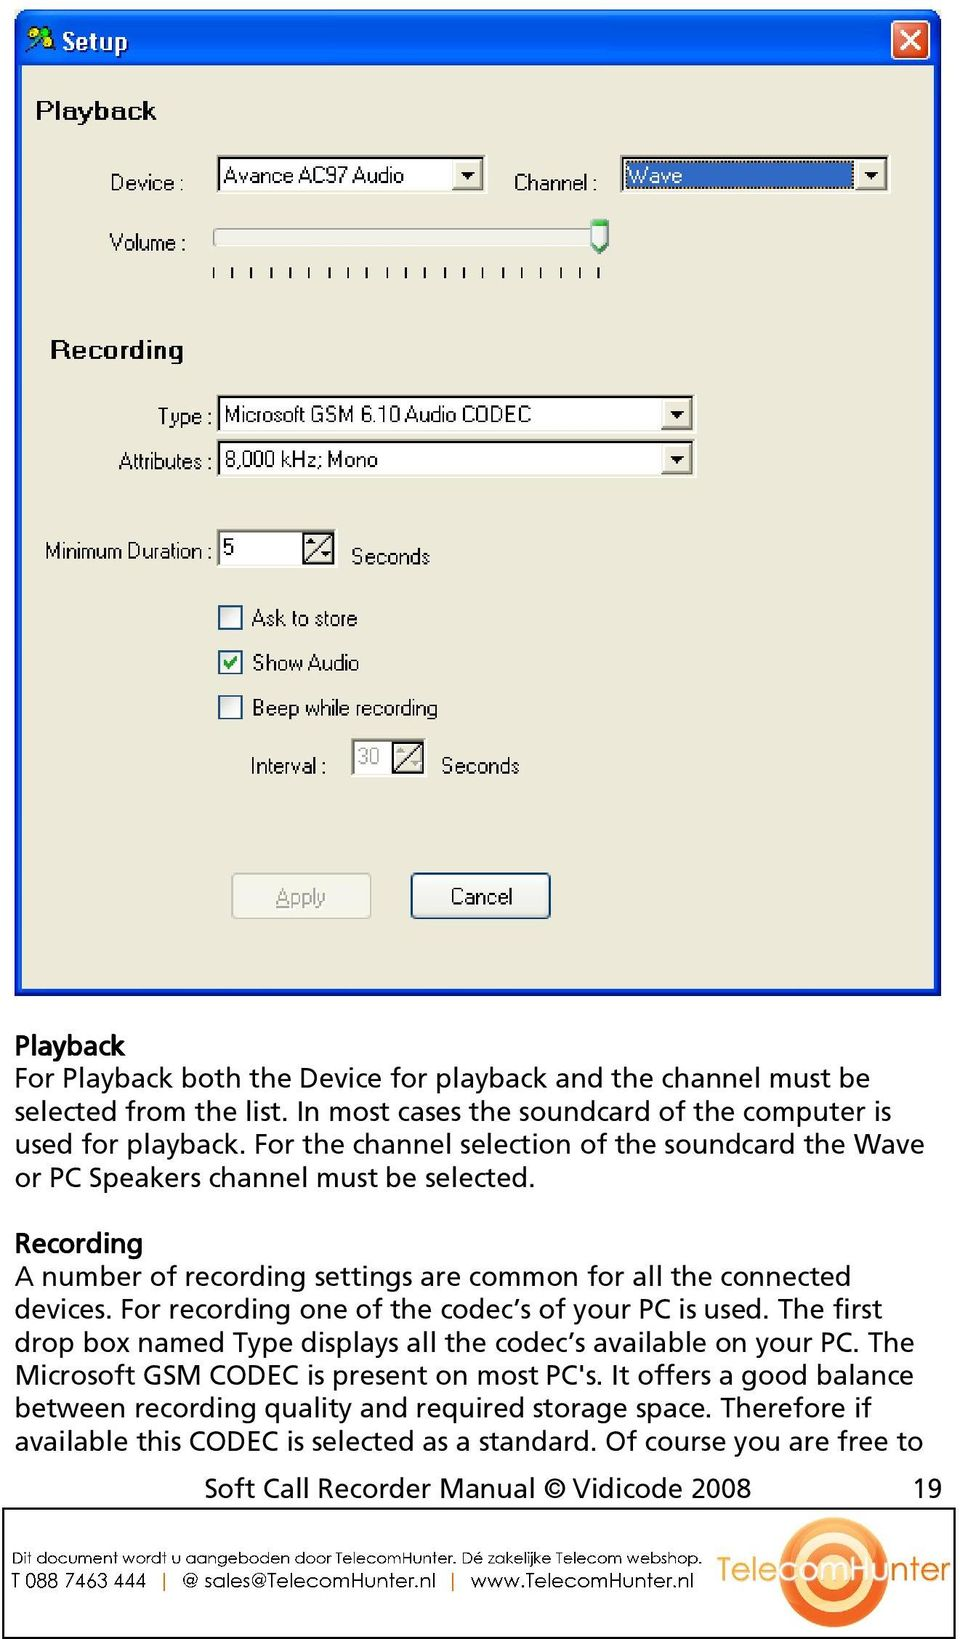 For recording one of the codec s of your PC is used. The first drop box named Type displays all the codec s available on your PC. The Microsoft GSM CODEC is present on most PC's.